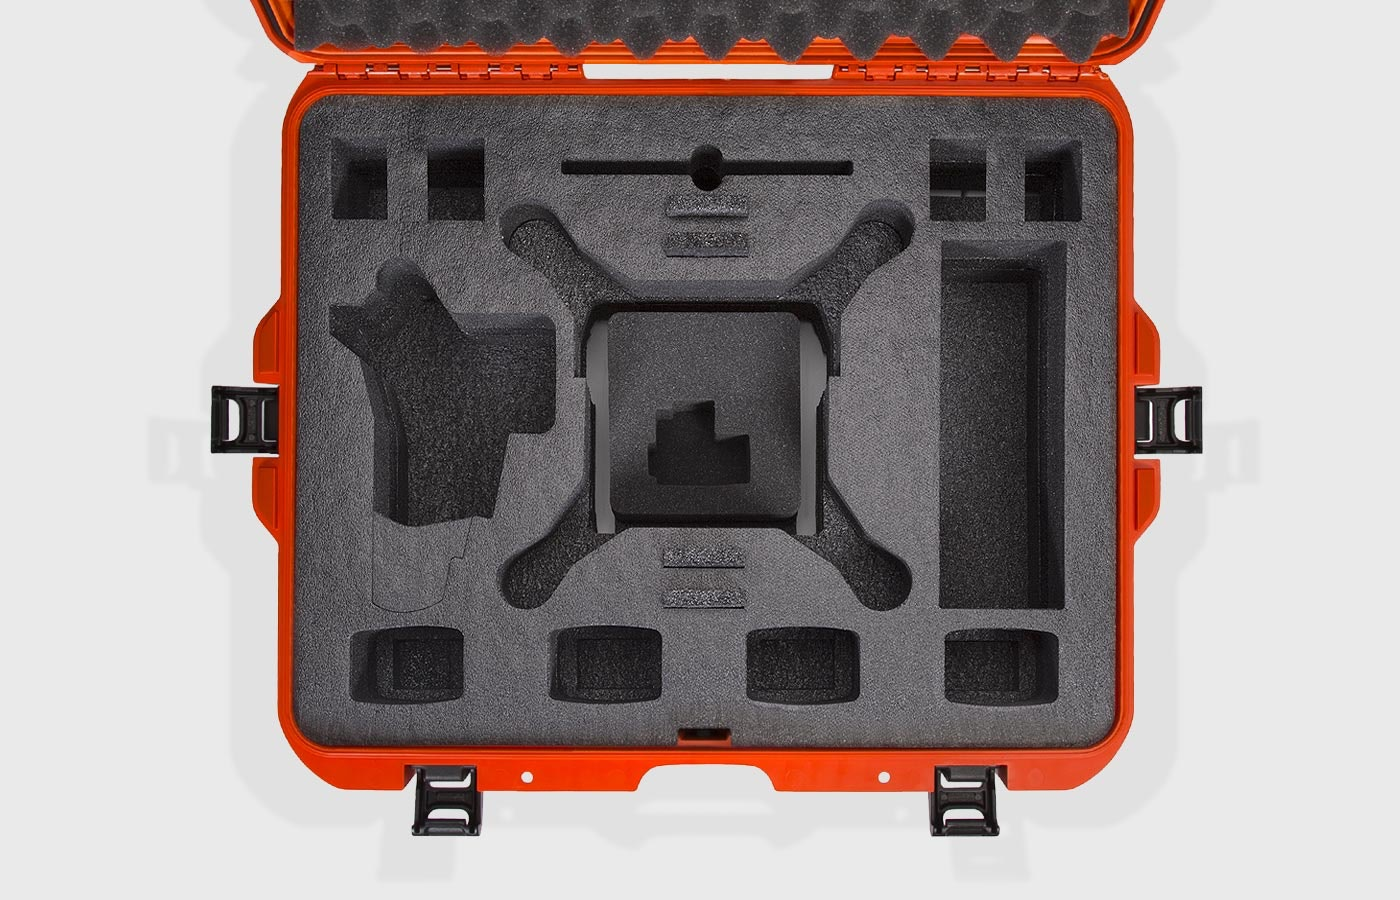 Empty foam case for the DJI Phantom 4